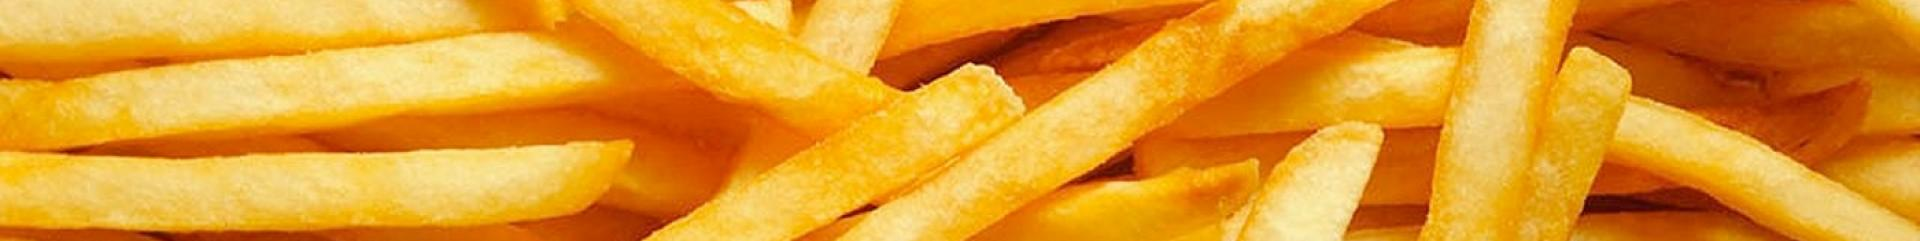 Wholesale frozen potatoe french fries